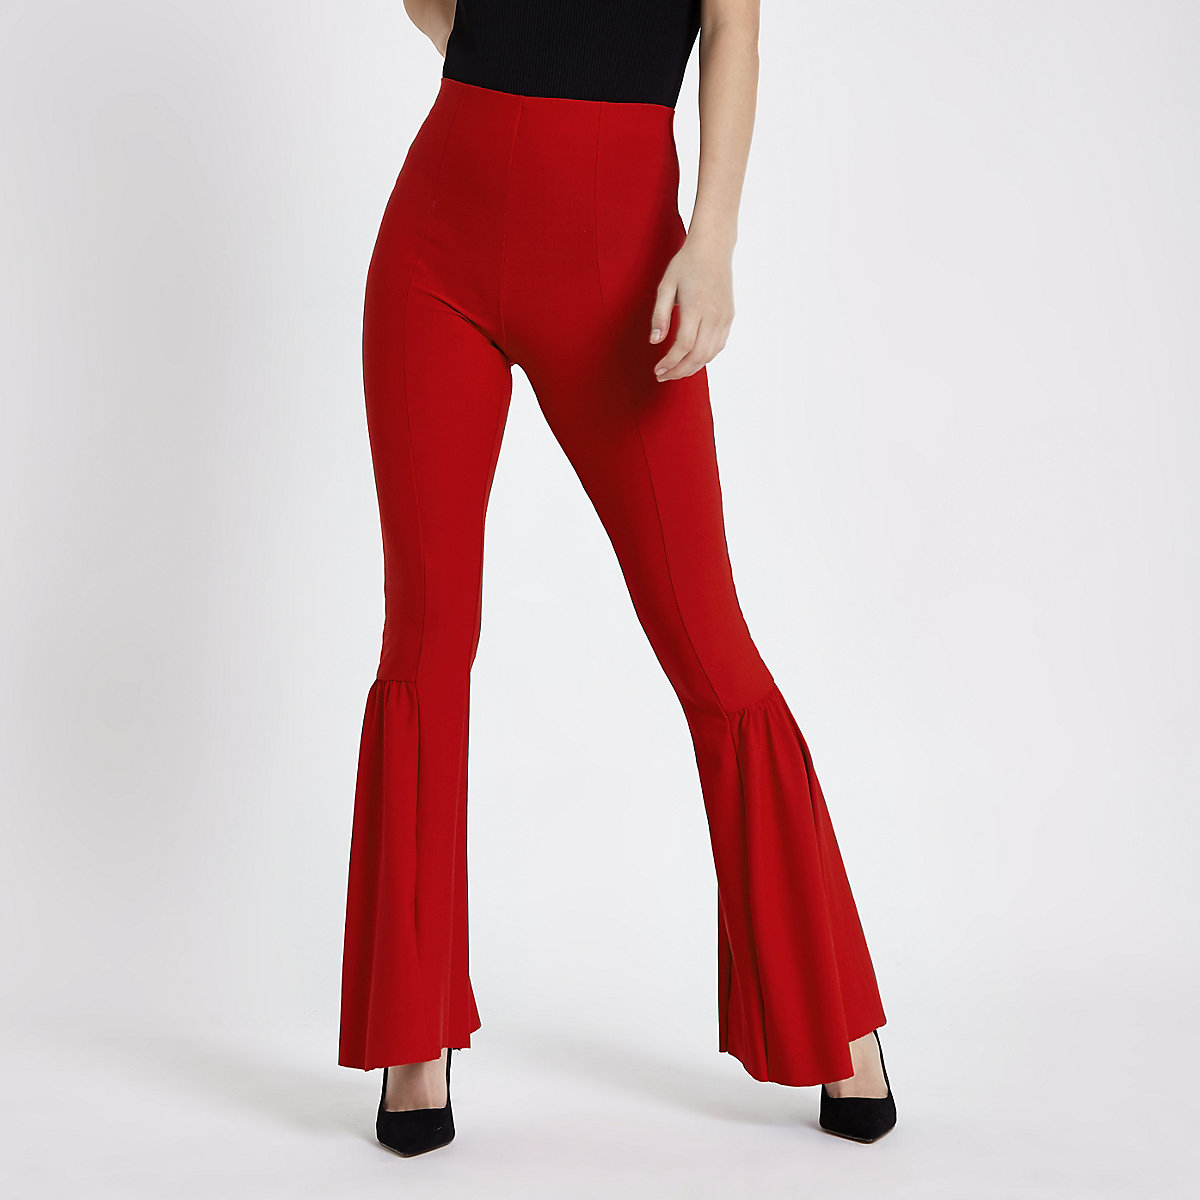 Red frill flare pants